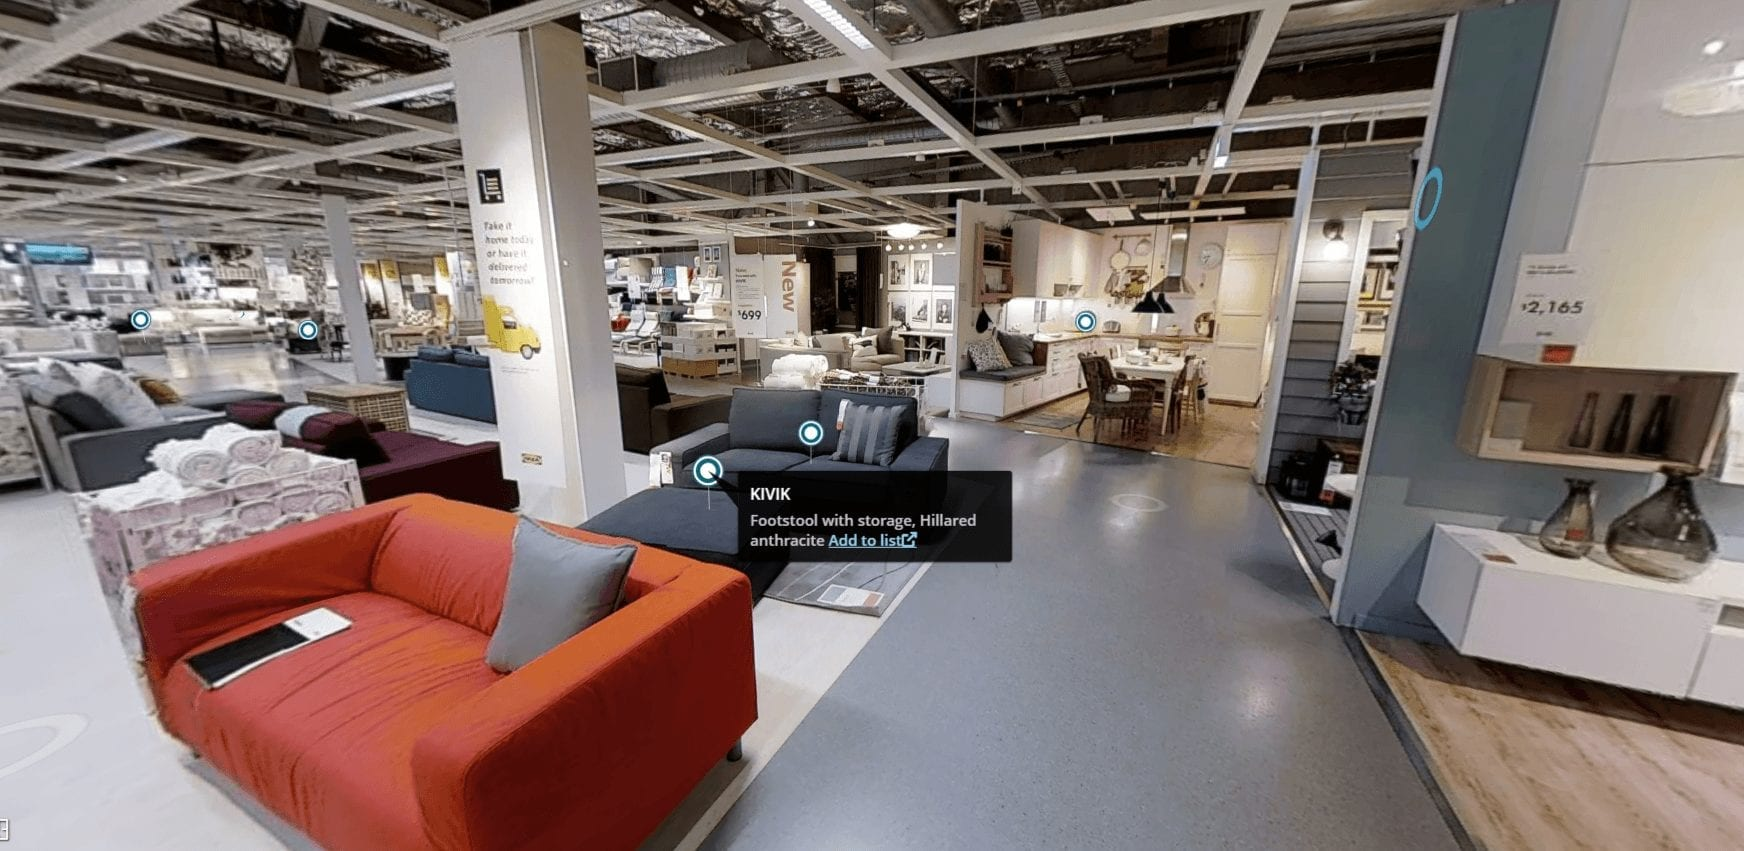 IKEA using VR is business